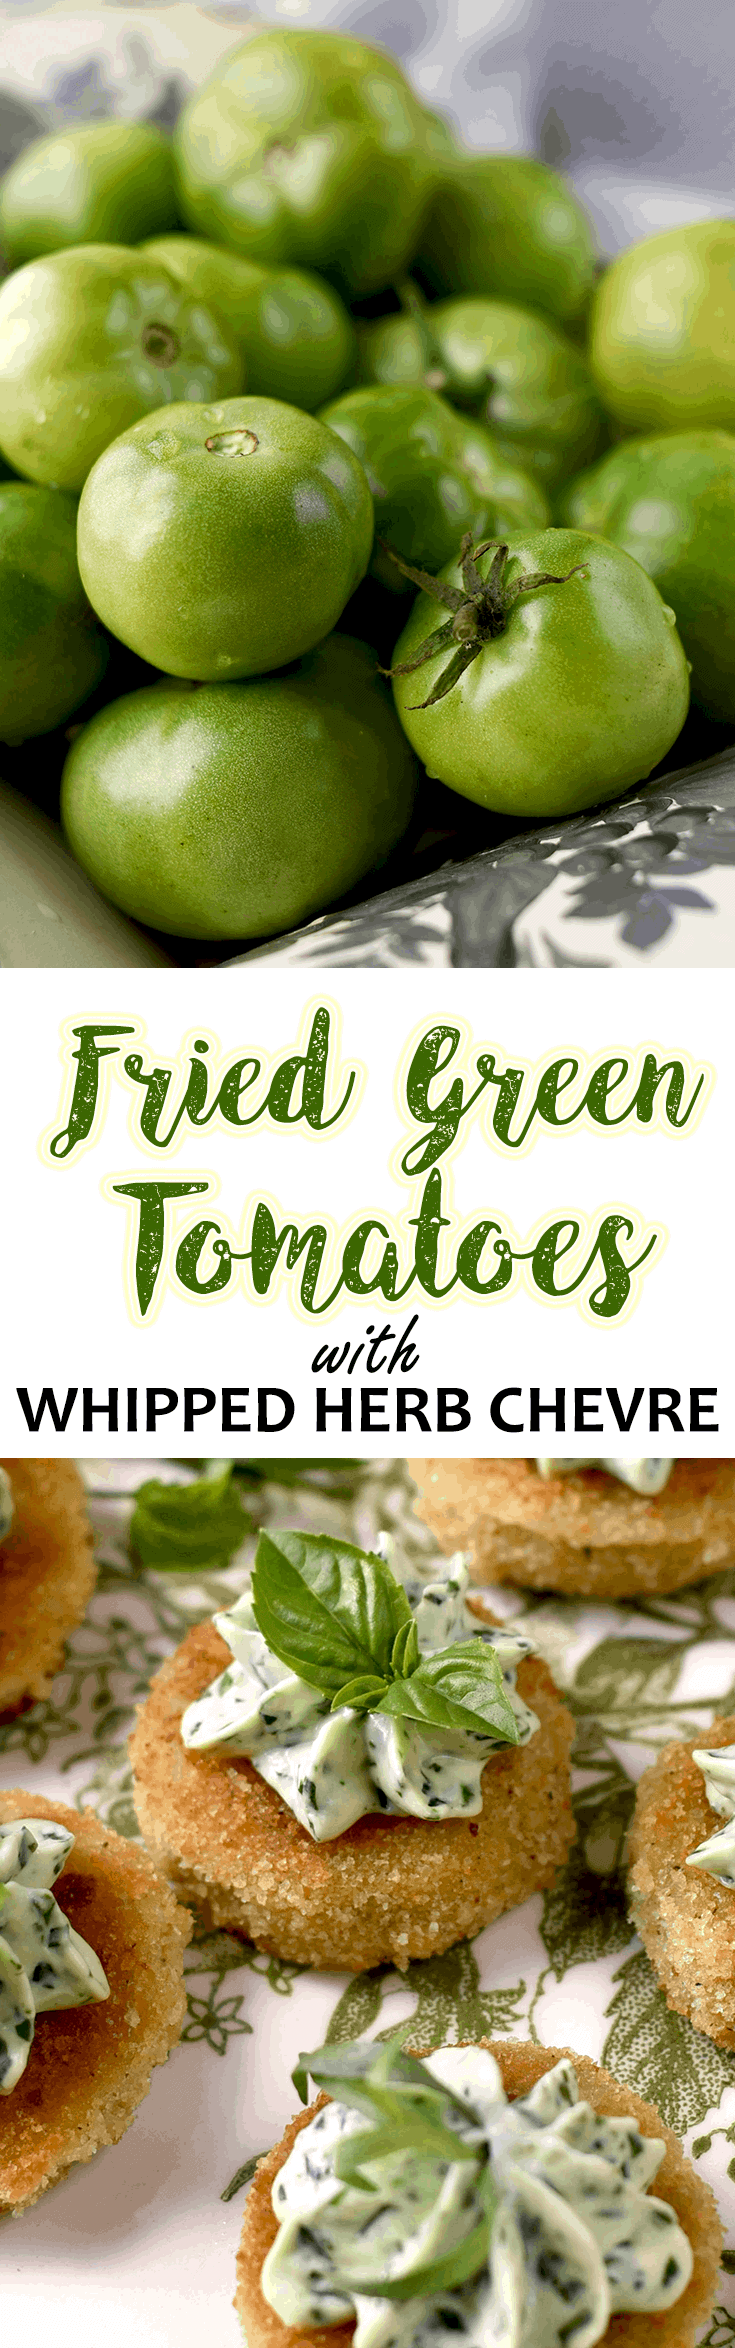 Fried Green Tomatoes Pin - Fried Green Tomatoes </br>with Whipped Herb Chevre